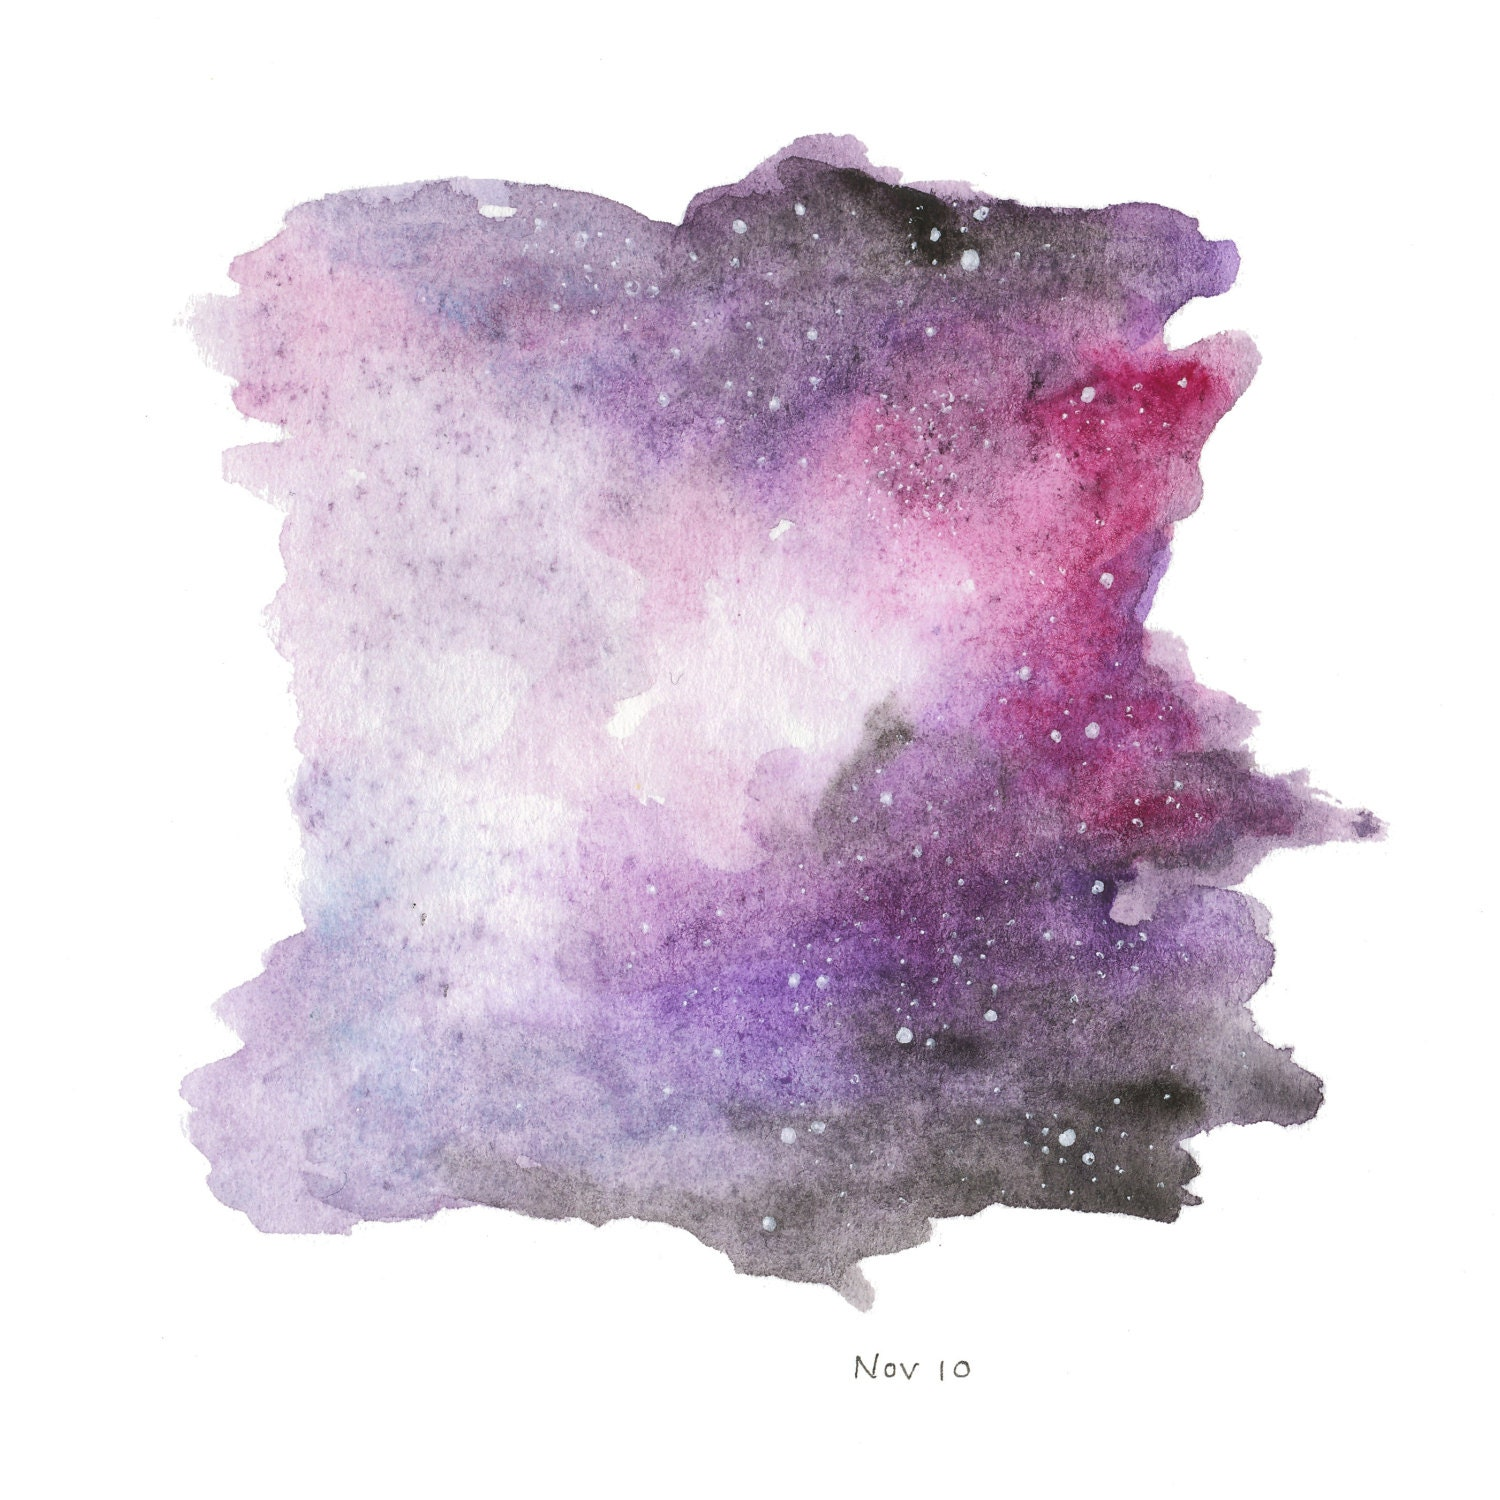 Galaxy Watercolor Painting 6x6